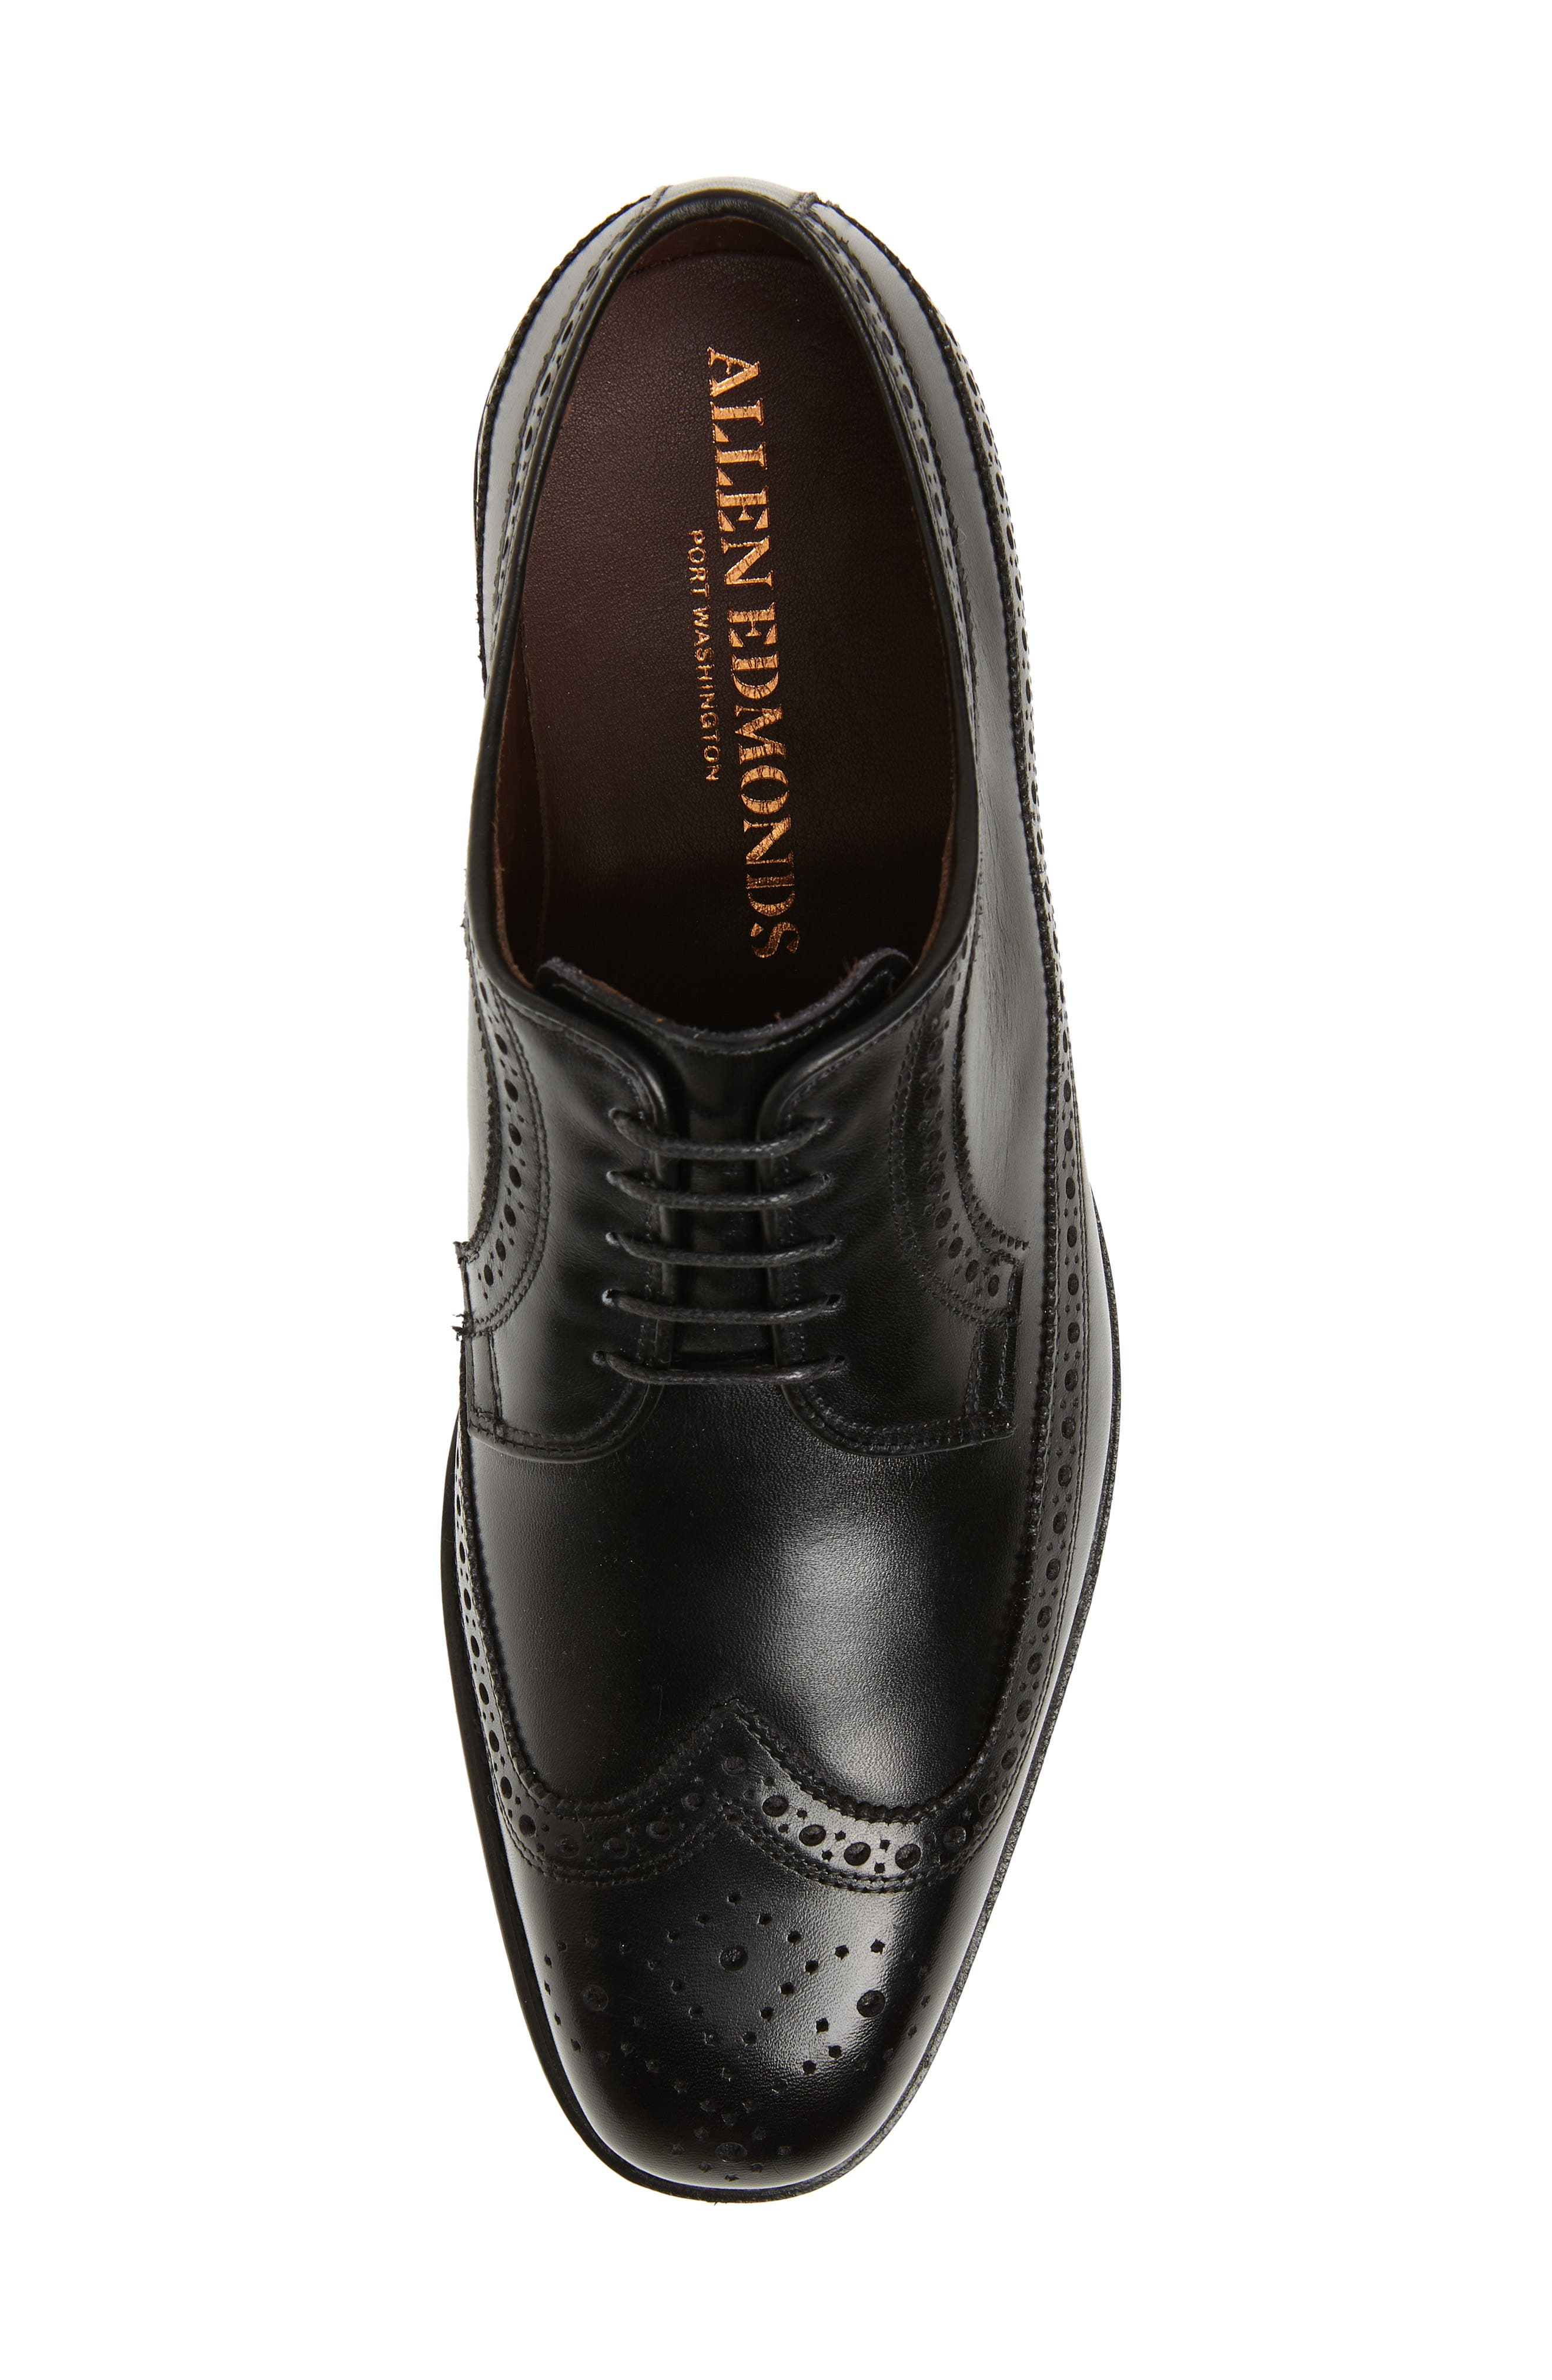 ALLEN EDMONDS,                             Grandview Longwing Derby,                             Alternate thumbnail 5, color,                             001